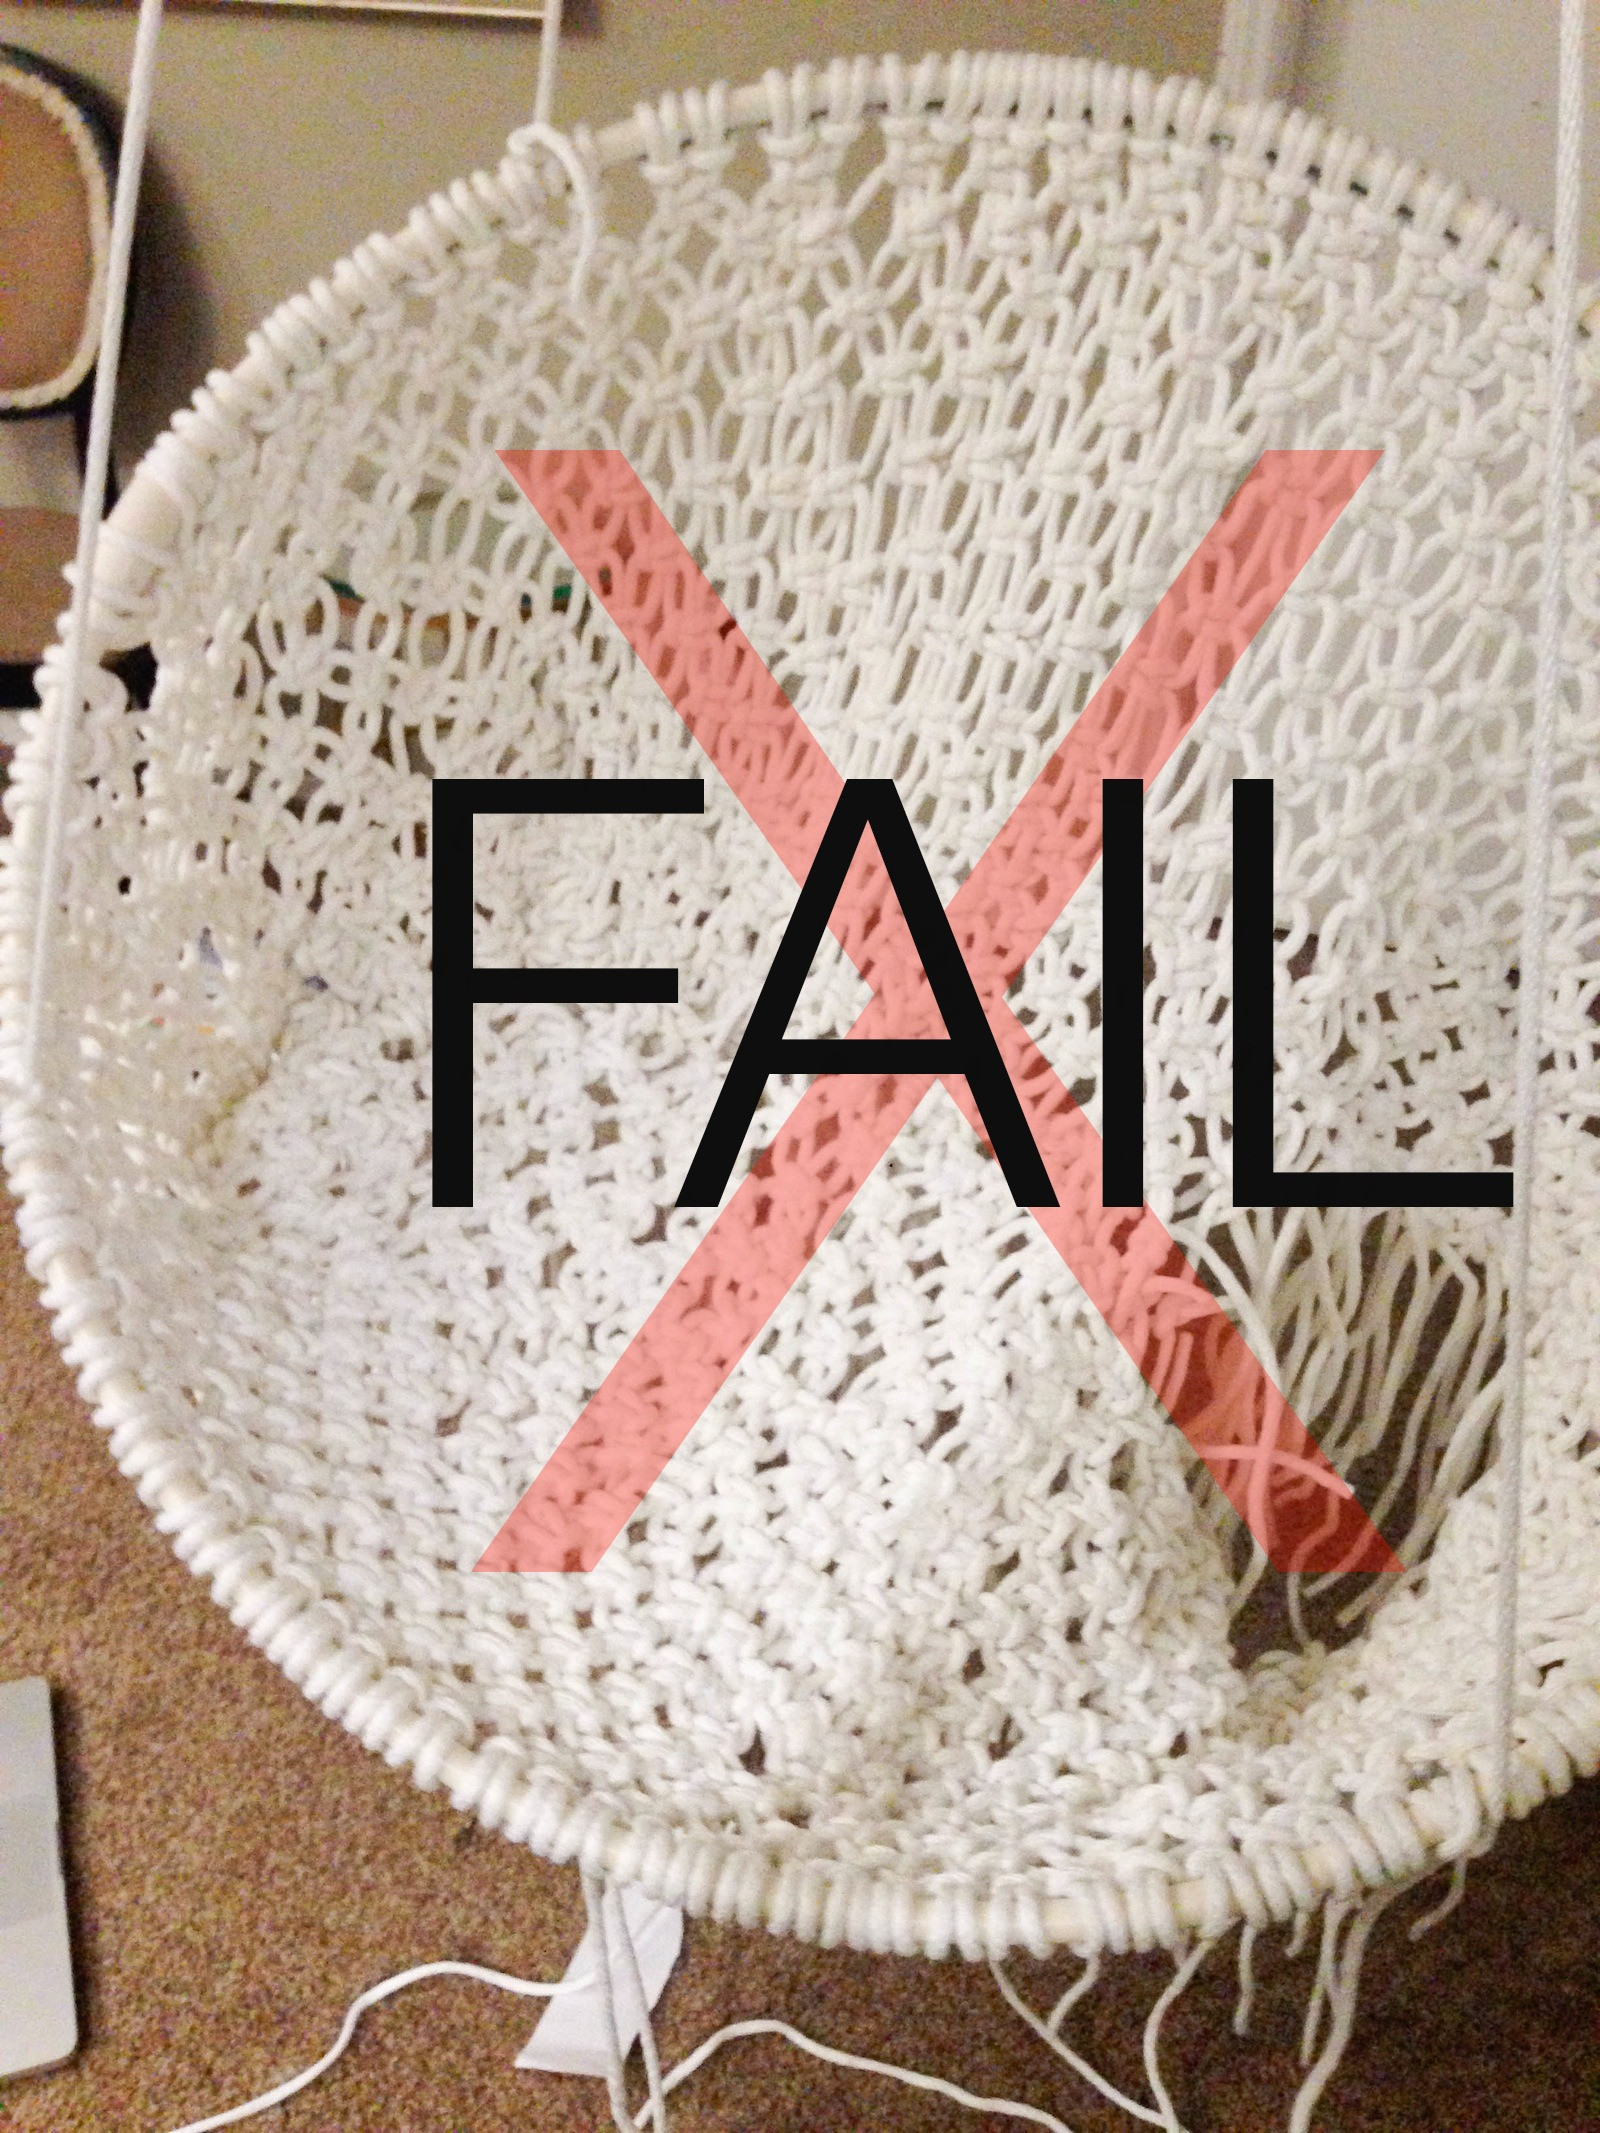 Best ideas about DIY Macrame Hanging Chair . Save or Pin DIY Hanging Macramé Chair Now.